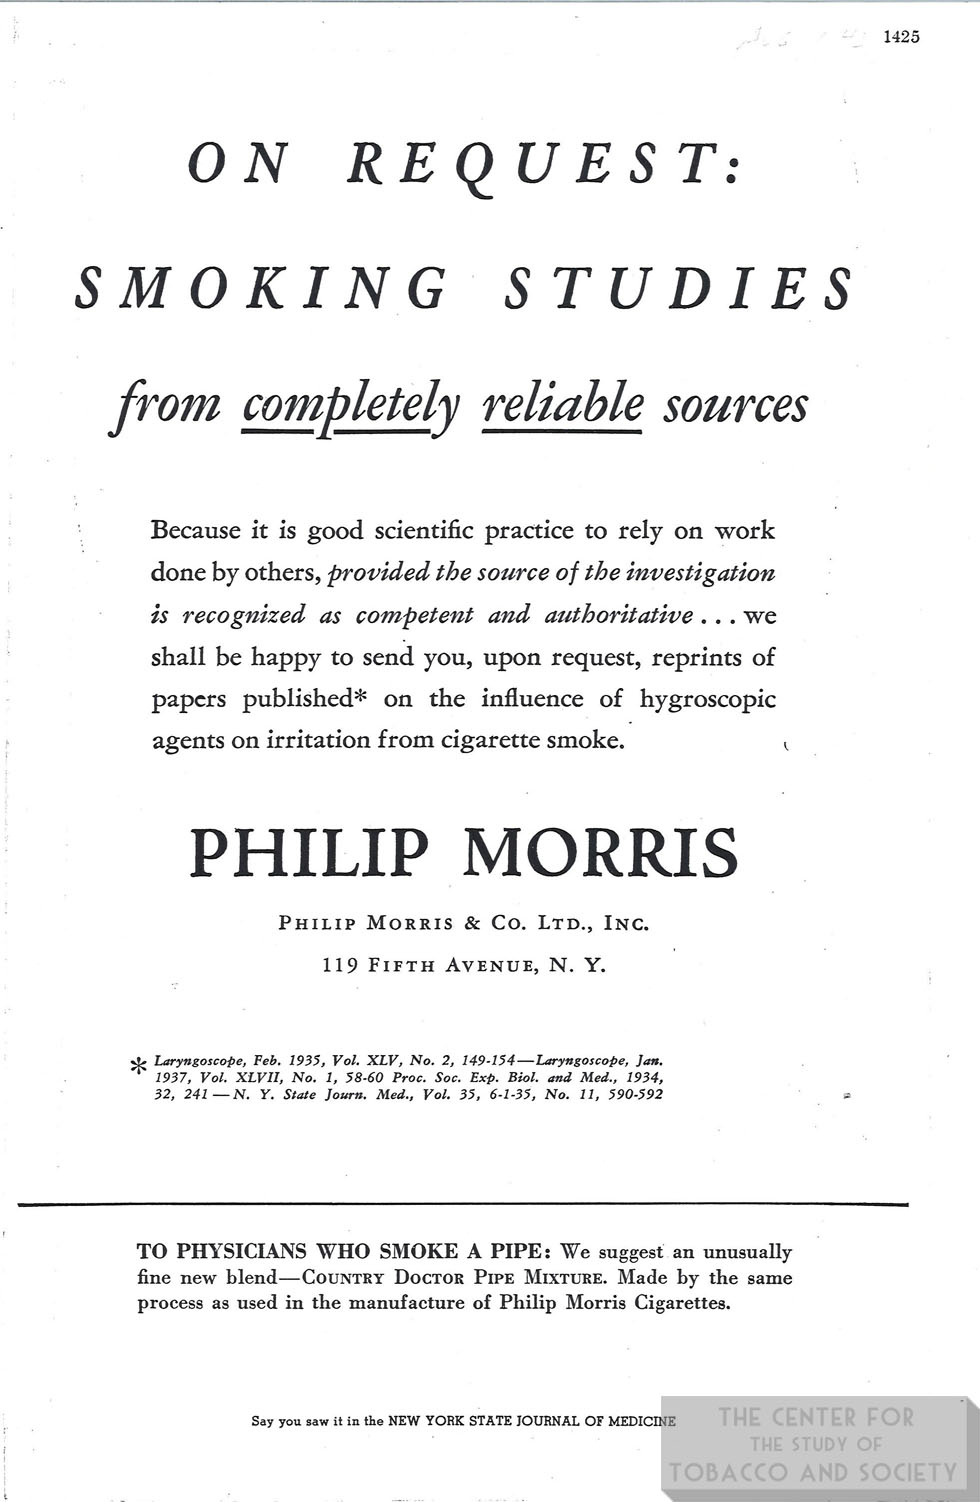 n.d. PM Ad On Request Smoking Studies